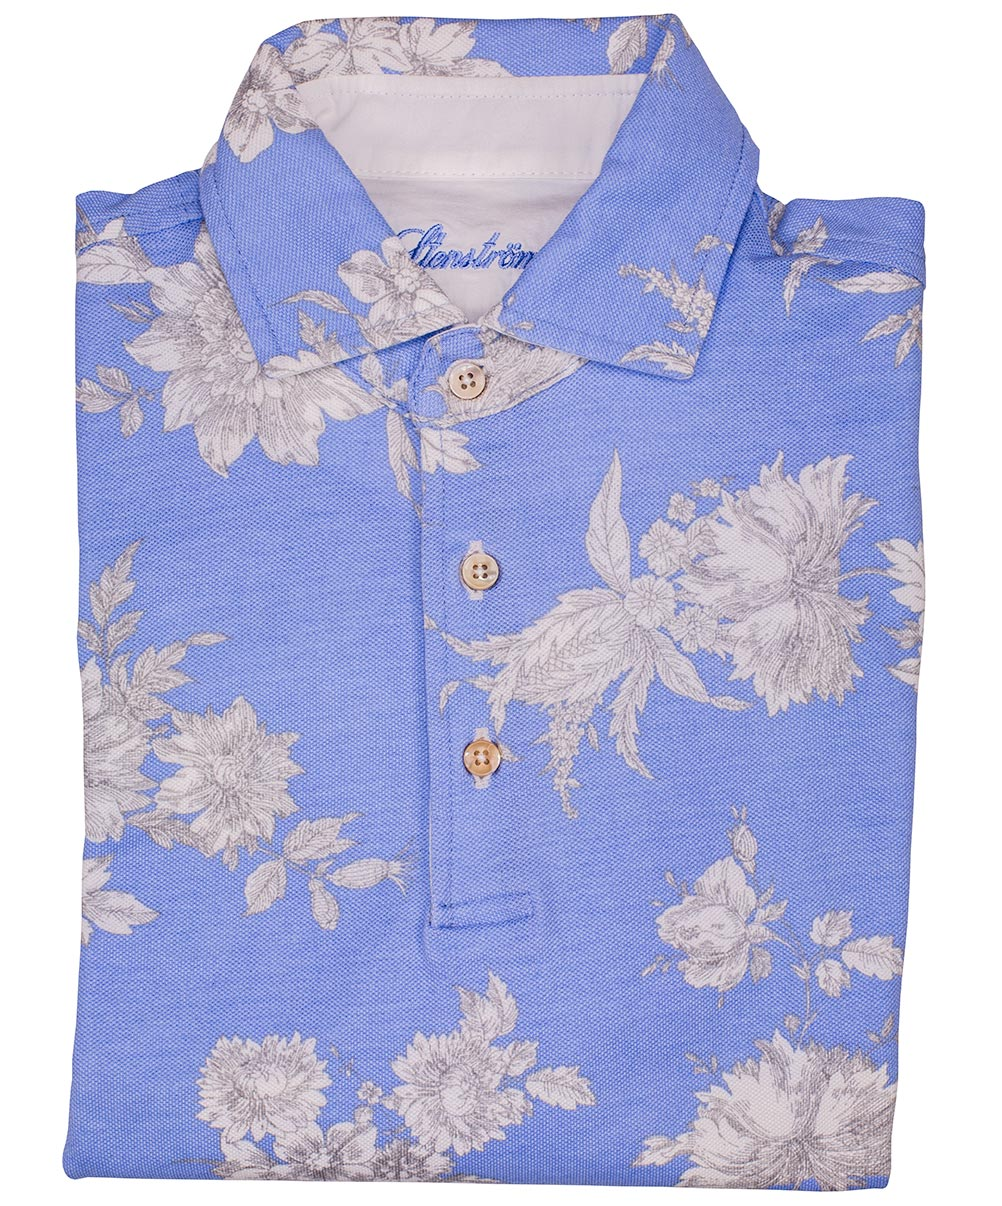 Sky Blue/Eggshell Large Soft Floral Printed Polo